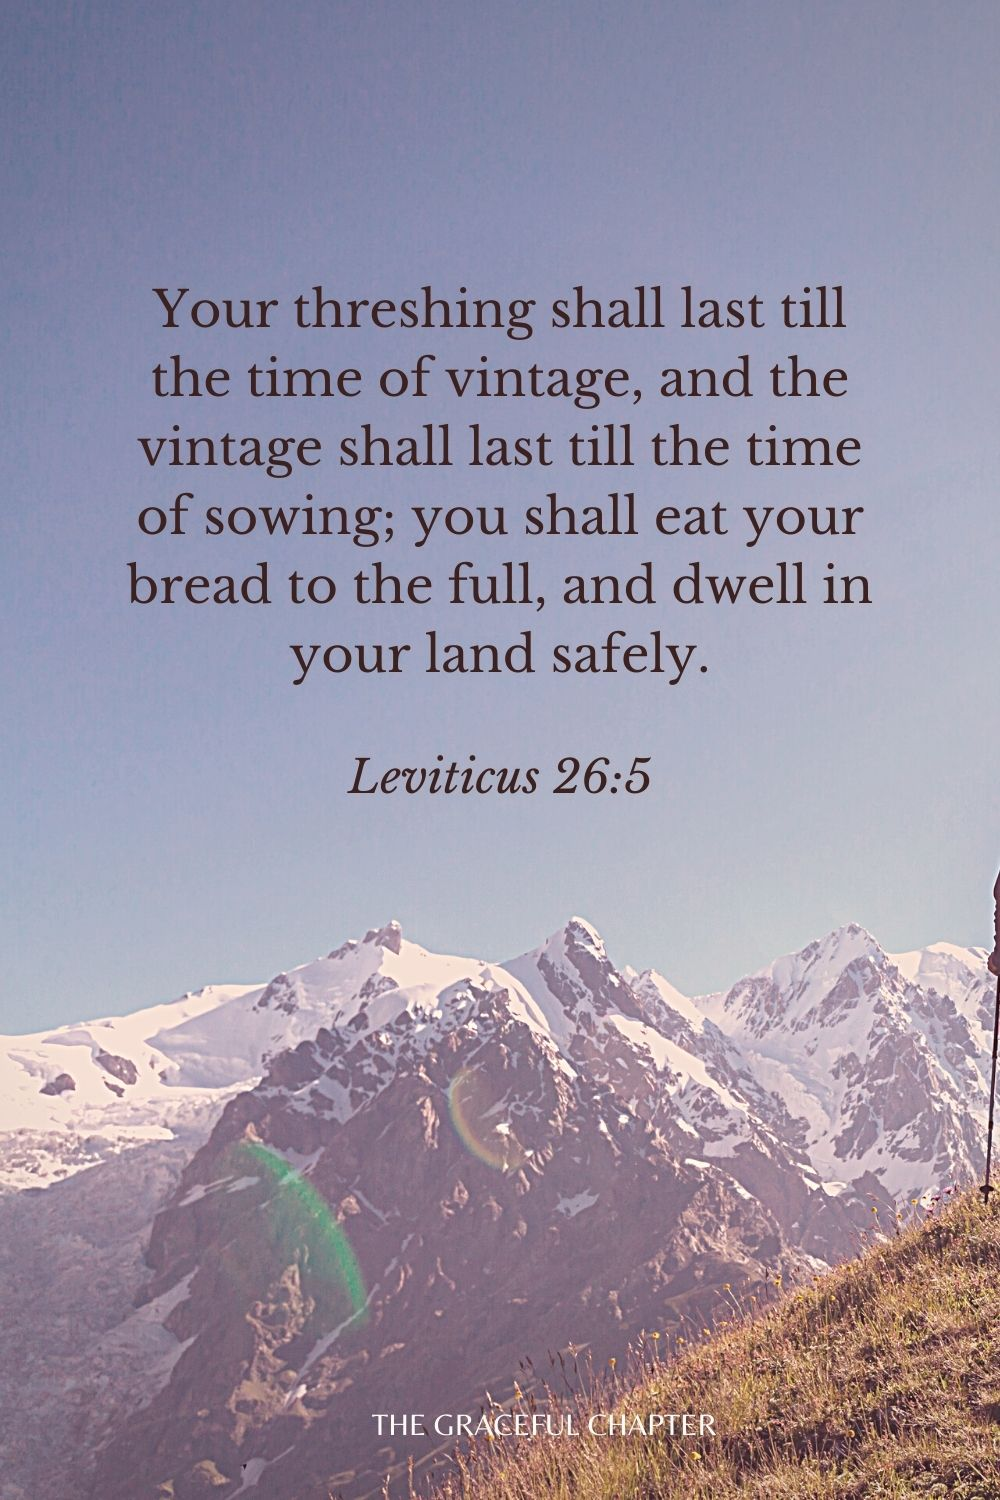 Your threshing shall last till the time of vintage, and the vintage shall last till the time of sowing; you shall eat your bread to the full, and dwell in your land safely. Leviticus 26:5